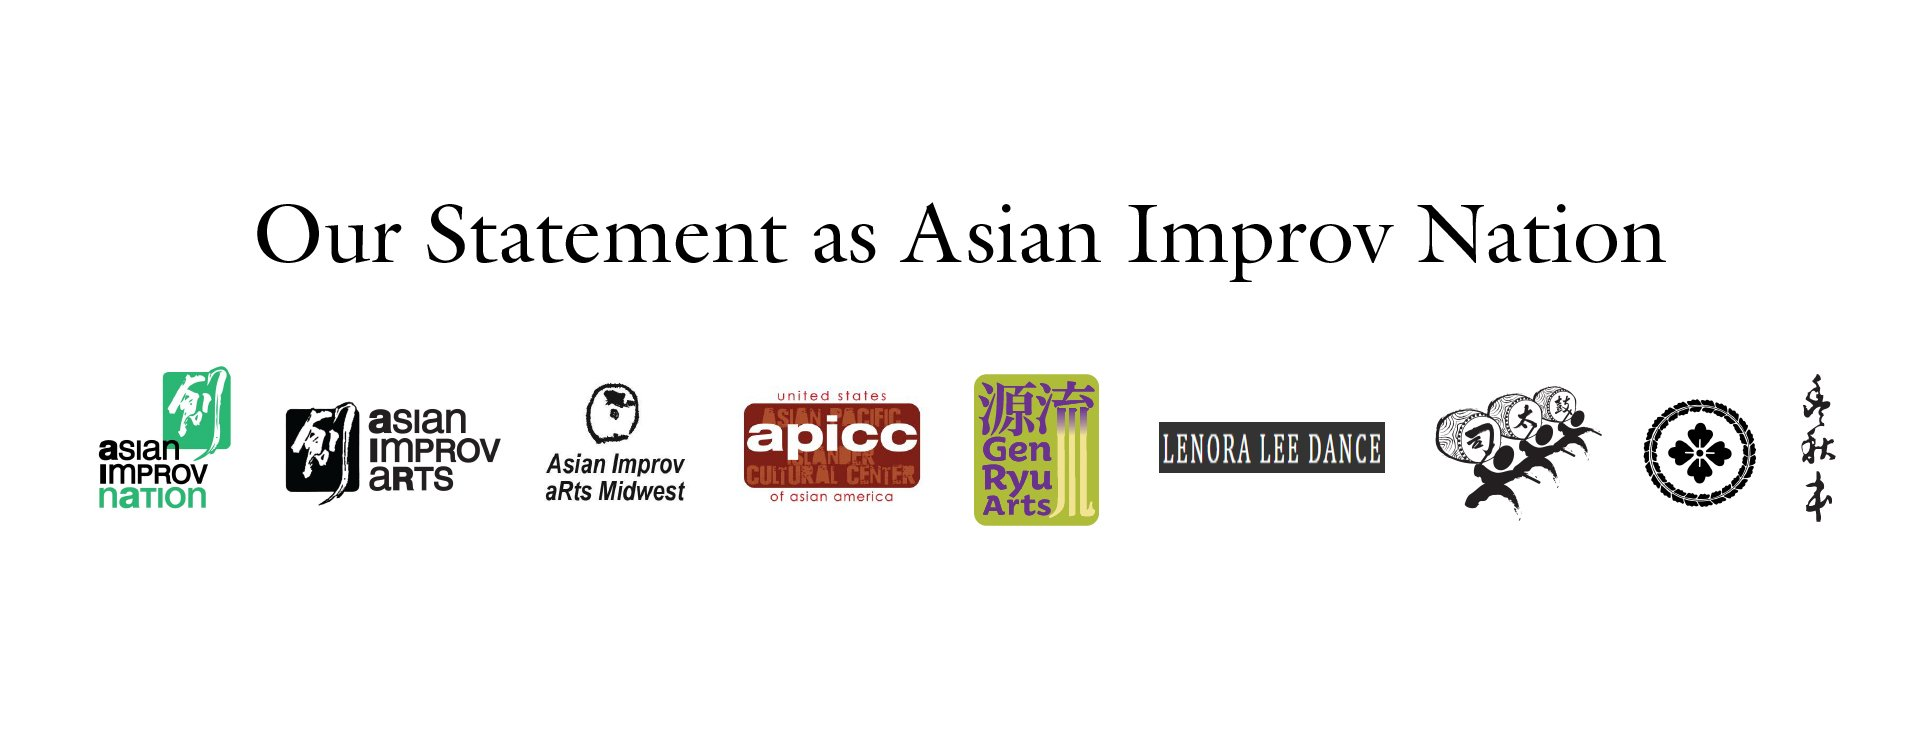 Our Statement as Asian Improv aRts Midwest Banner with logos of the programs